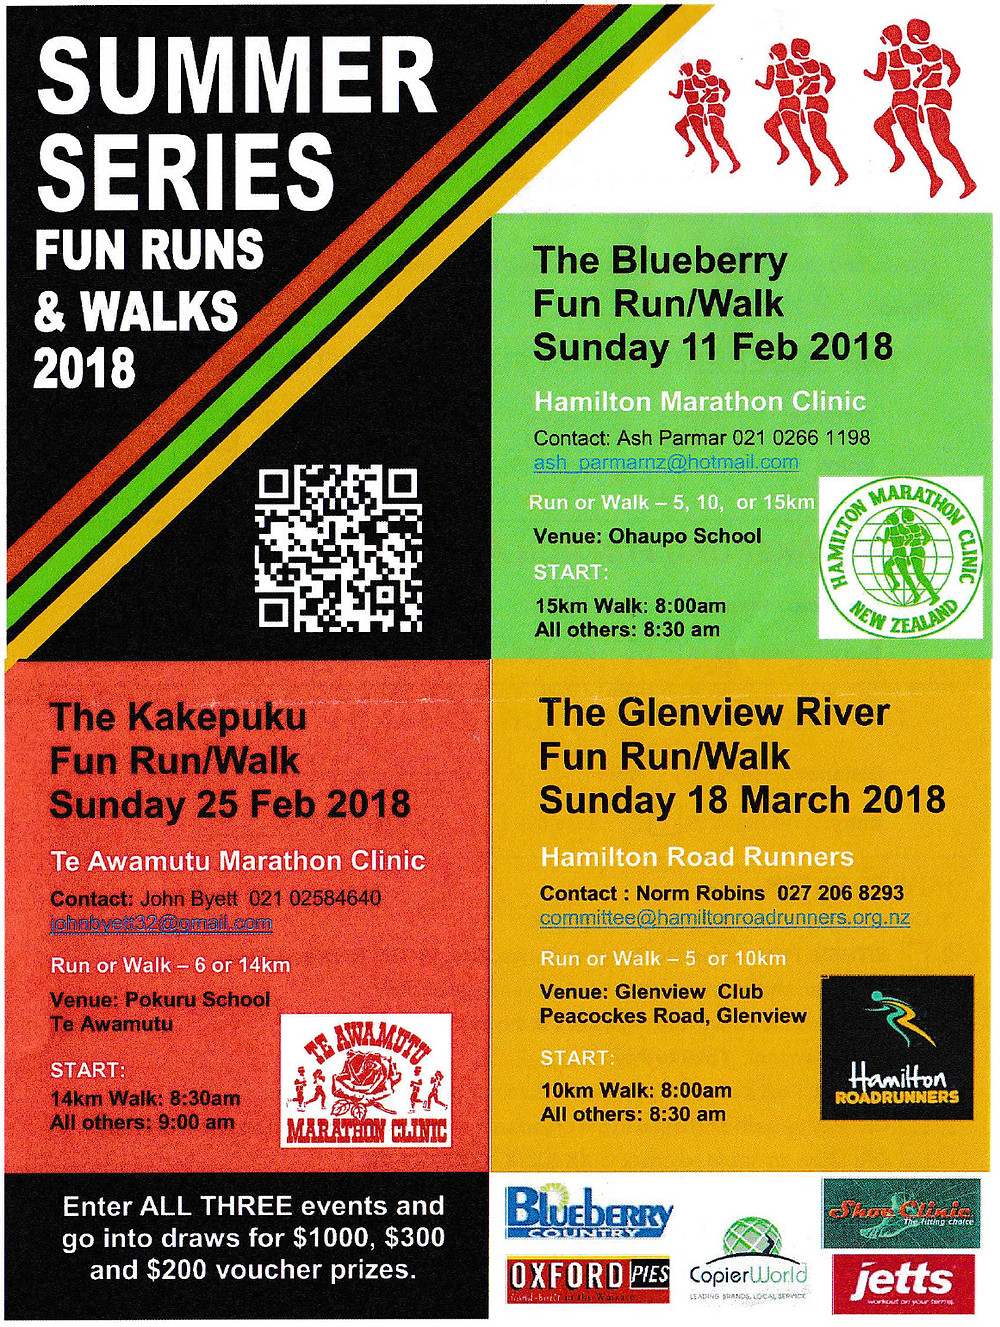 Waikato Summer Series Fun Runs 2018